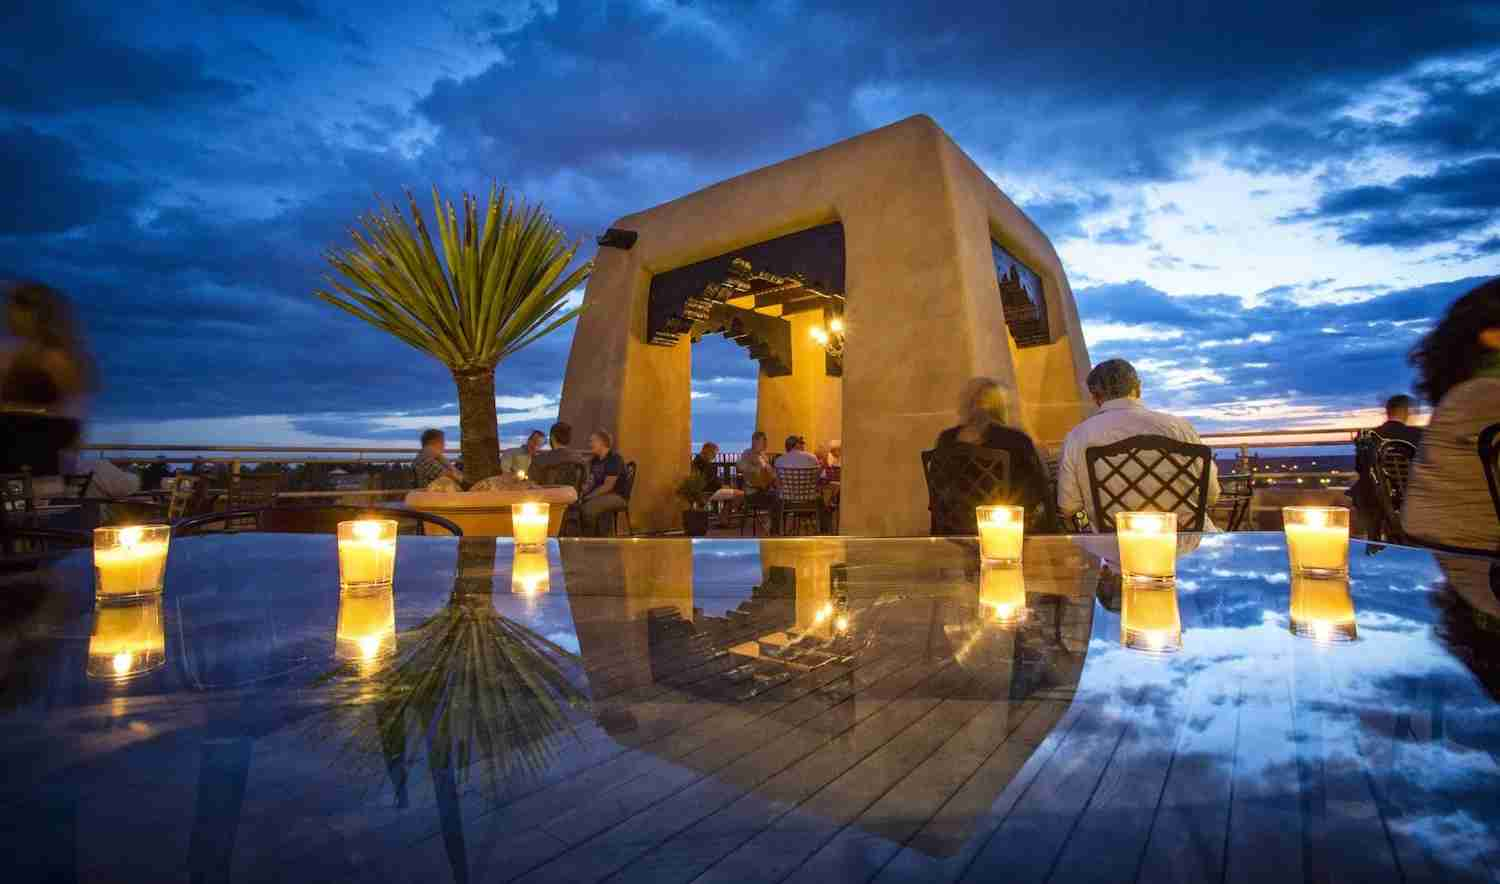 Soak up the sunset in Santa Fe. Image courtesy of Bell Tower Bar.